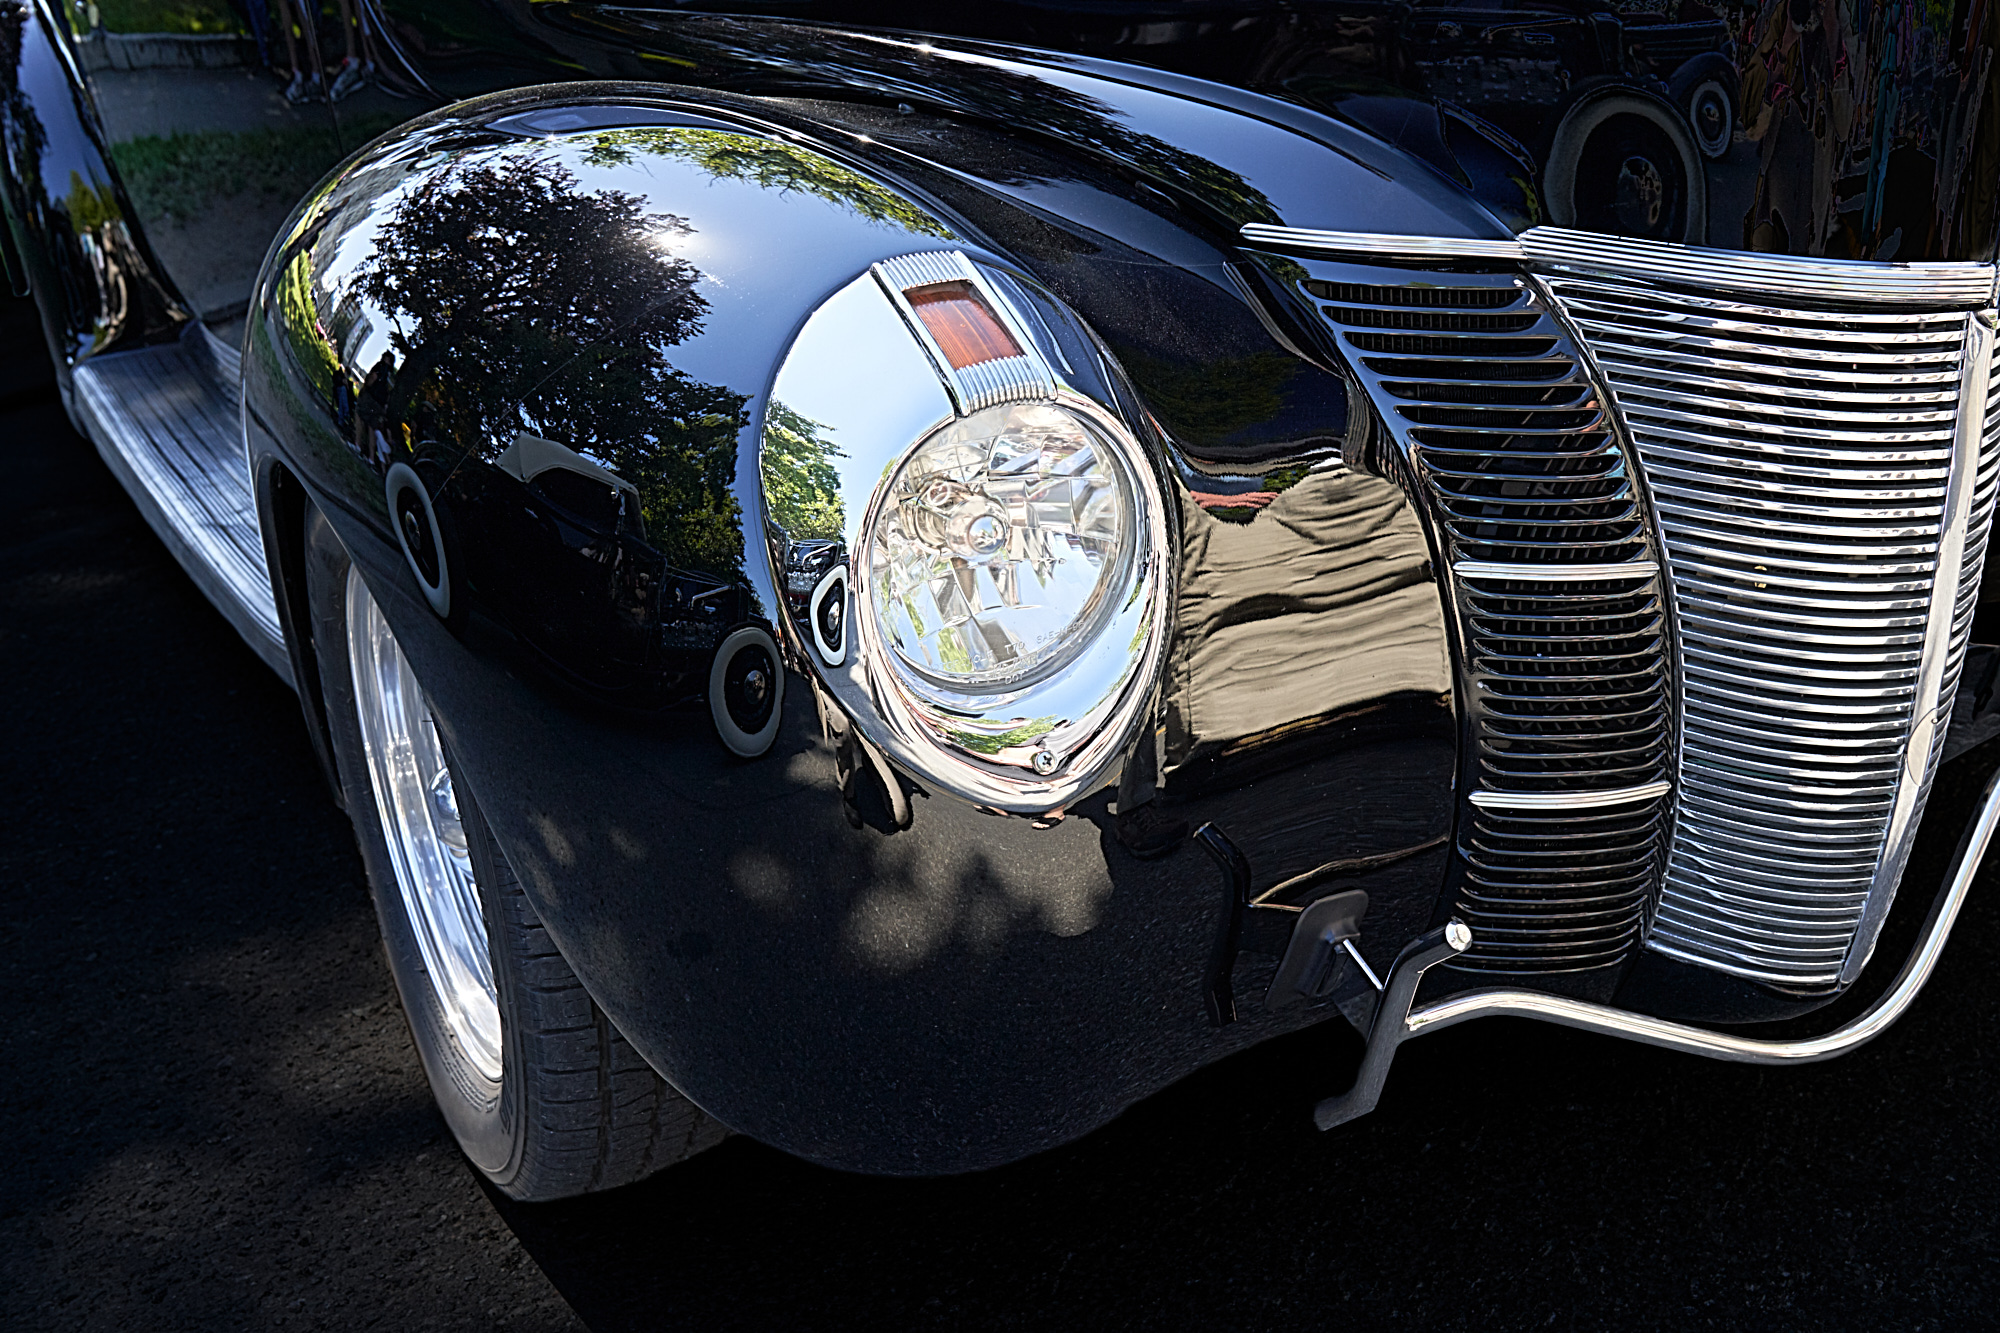 Reflections - 1940 Ford Coupe